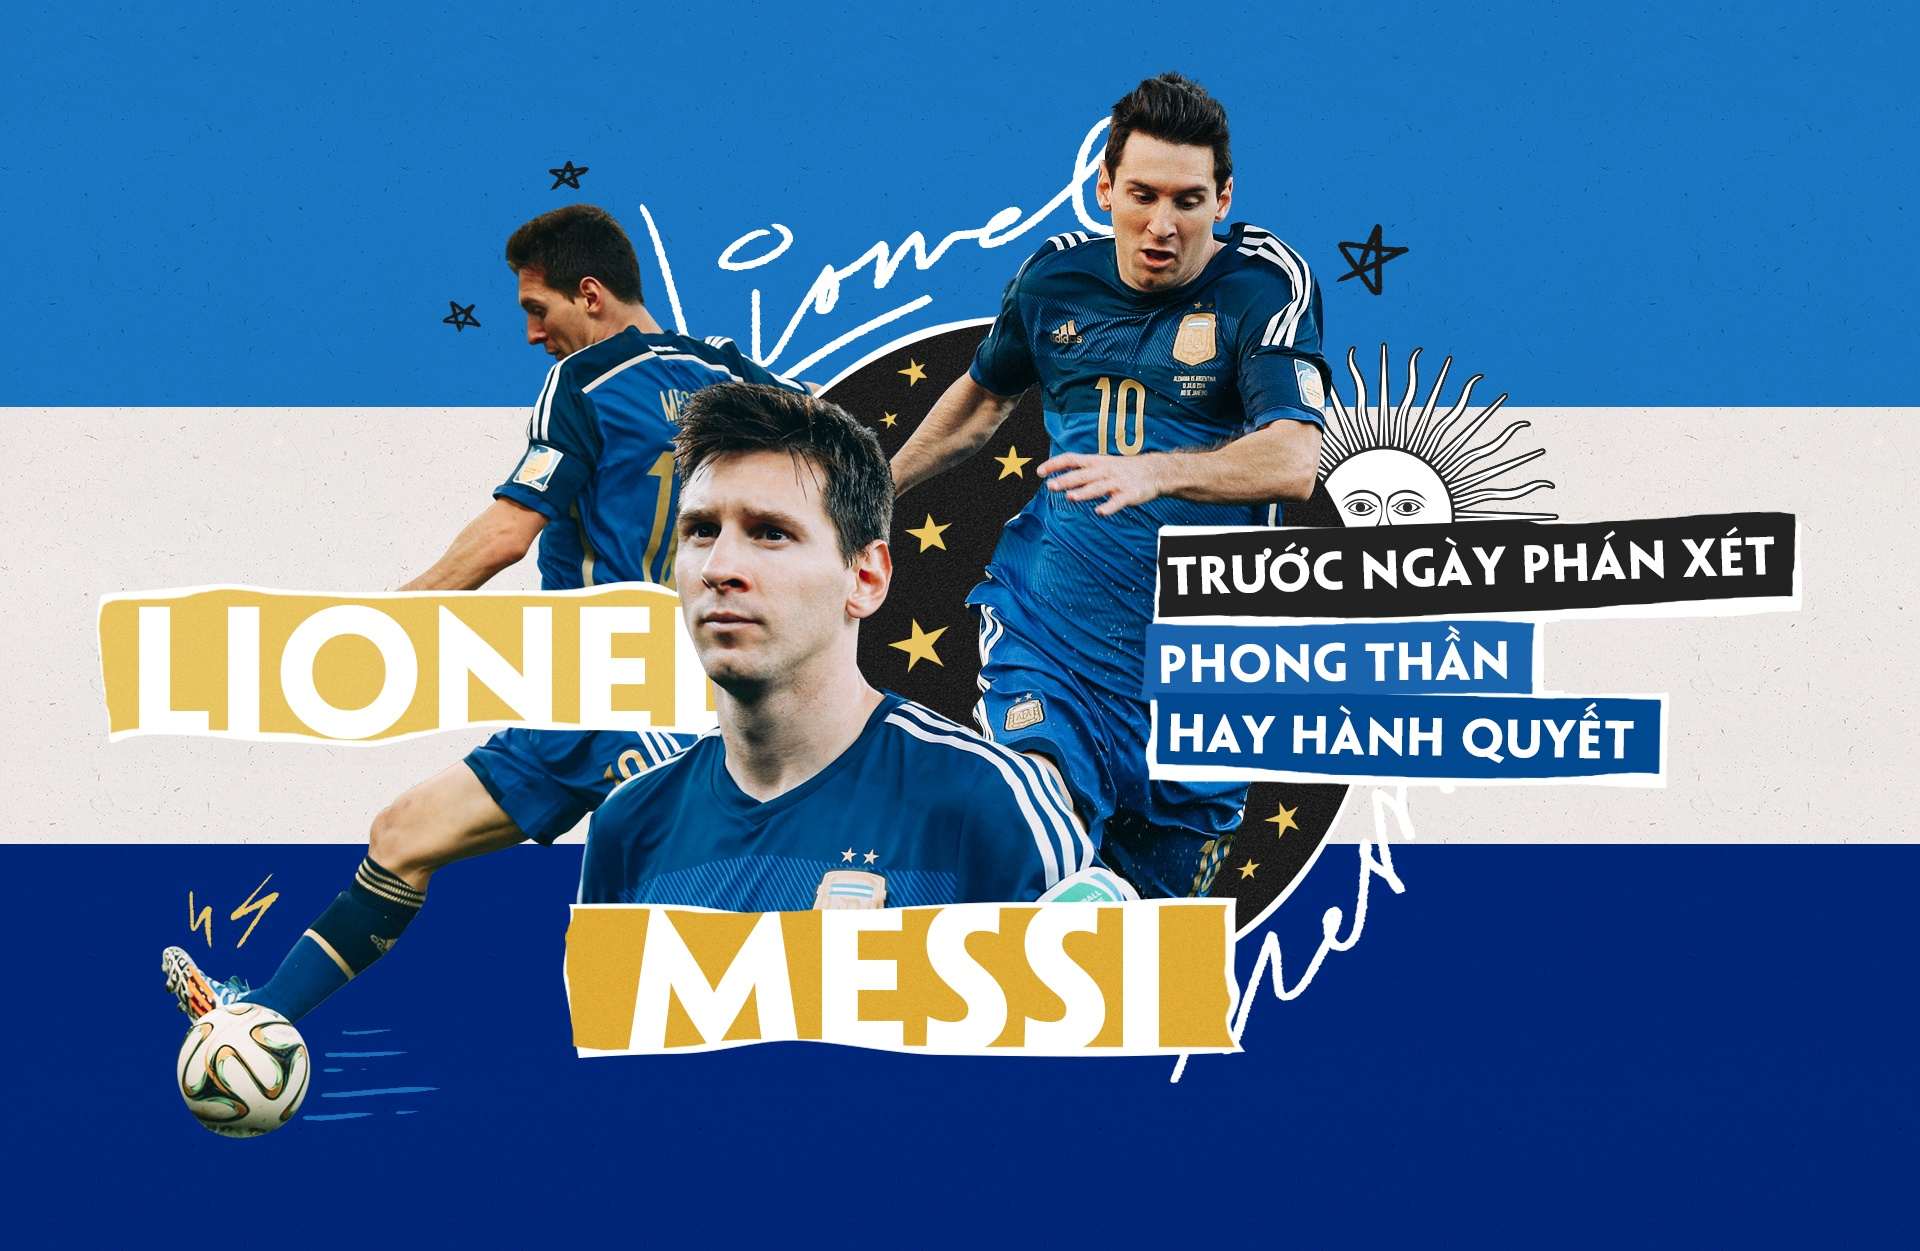 Lionel Messi truoc ngay phan quyet anh 2